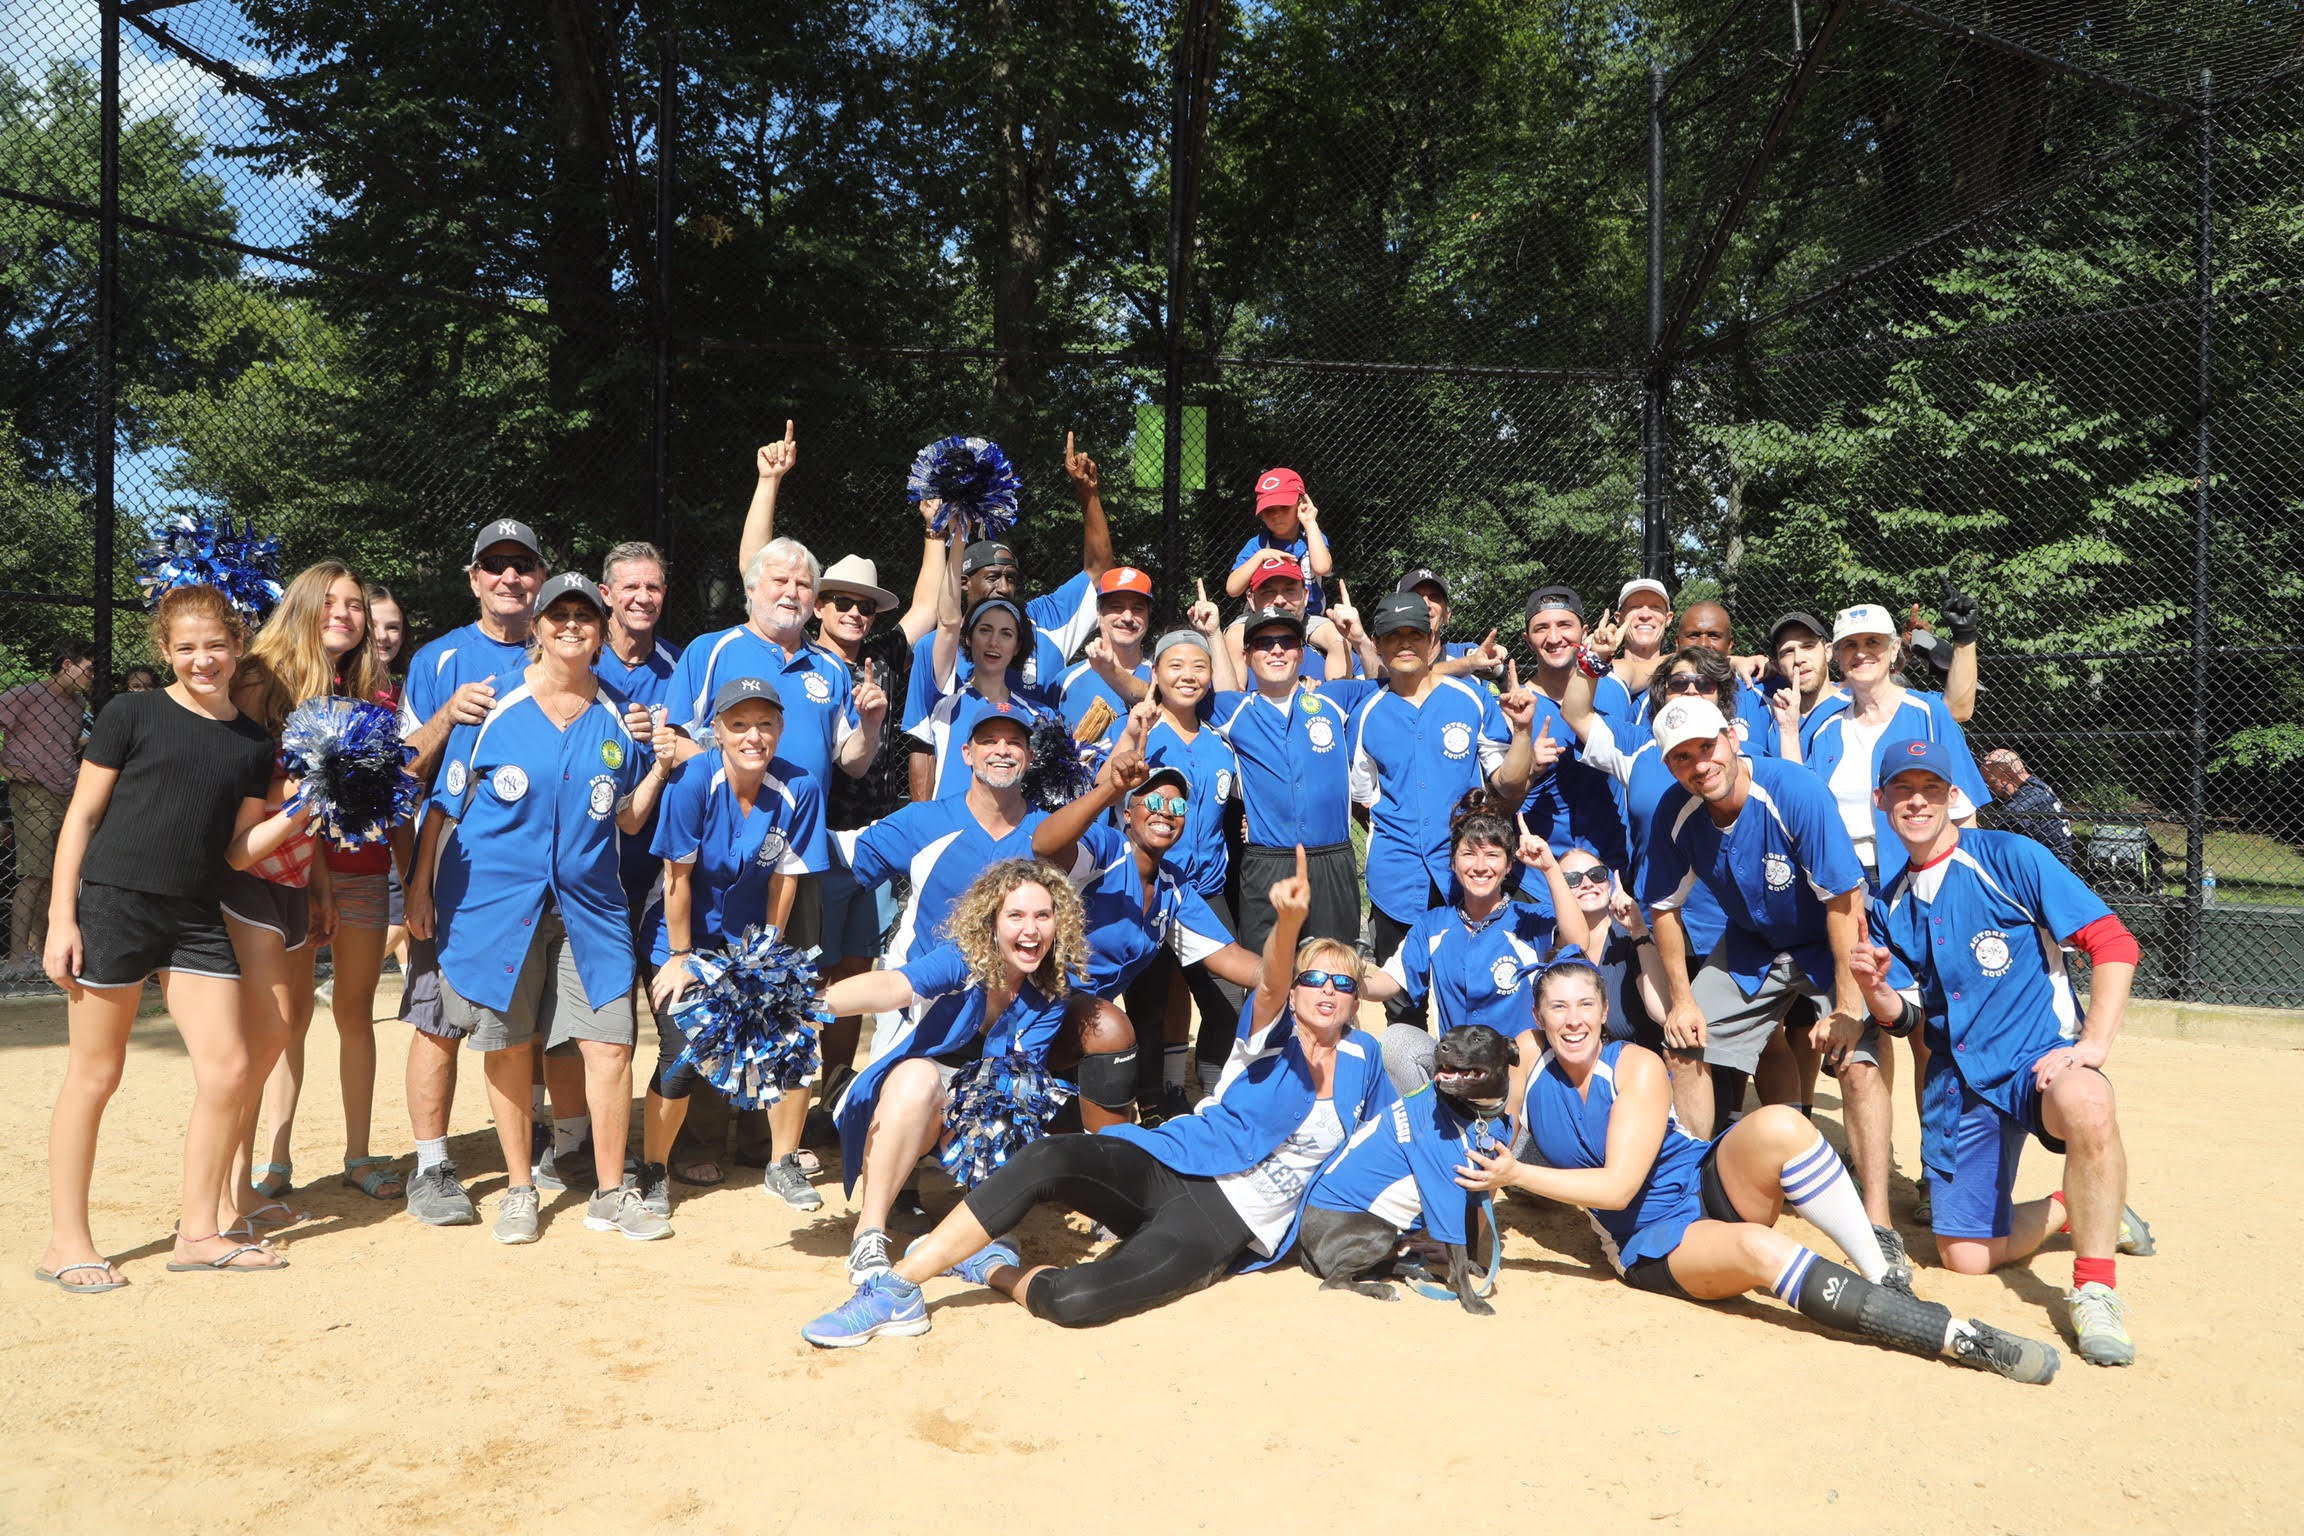 Undefeated softball champs - with Actors Equity as part of The Broadway Show League